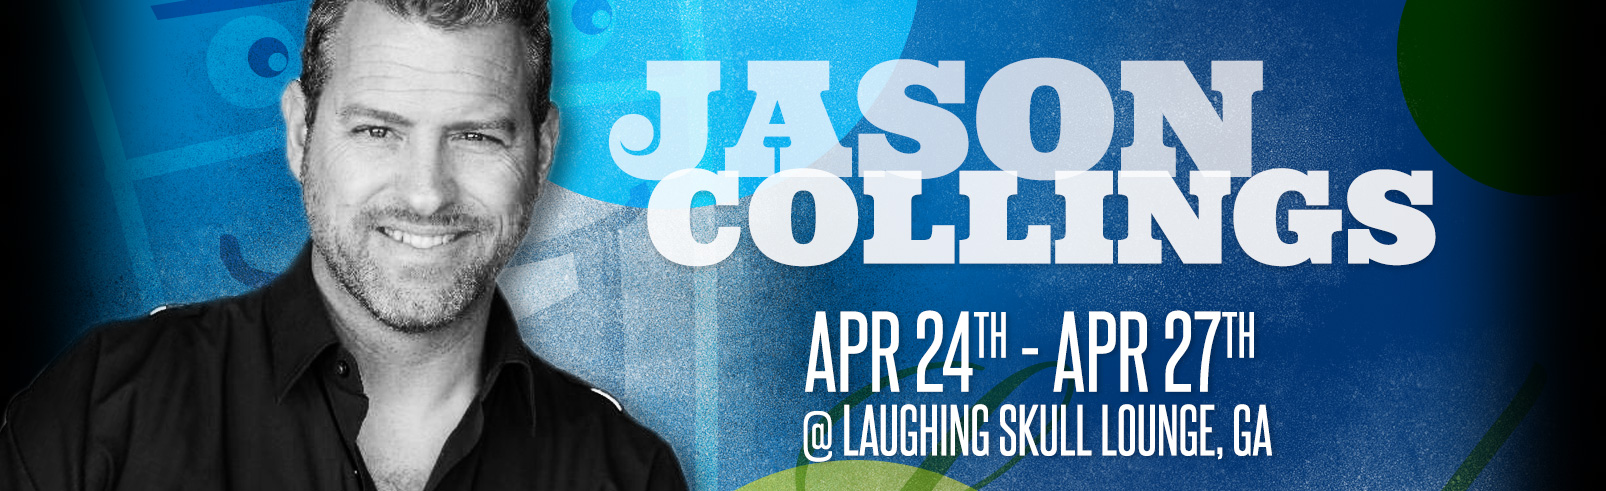 Jason Collings @ Laughking Skull Lounge